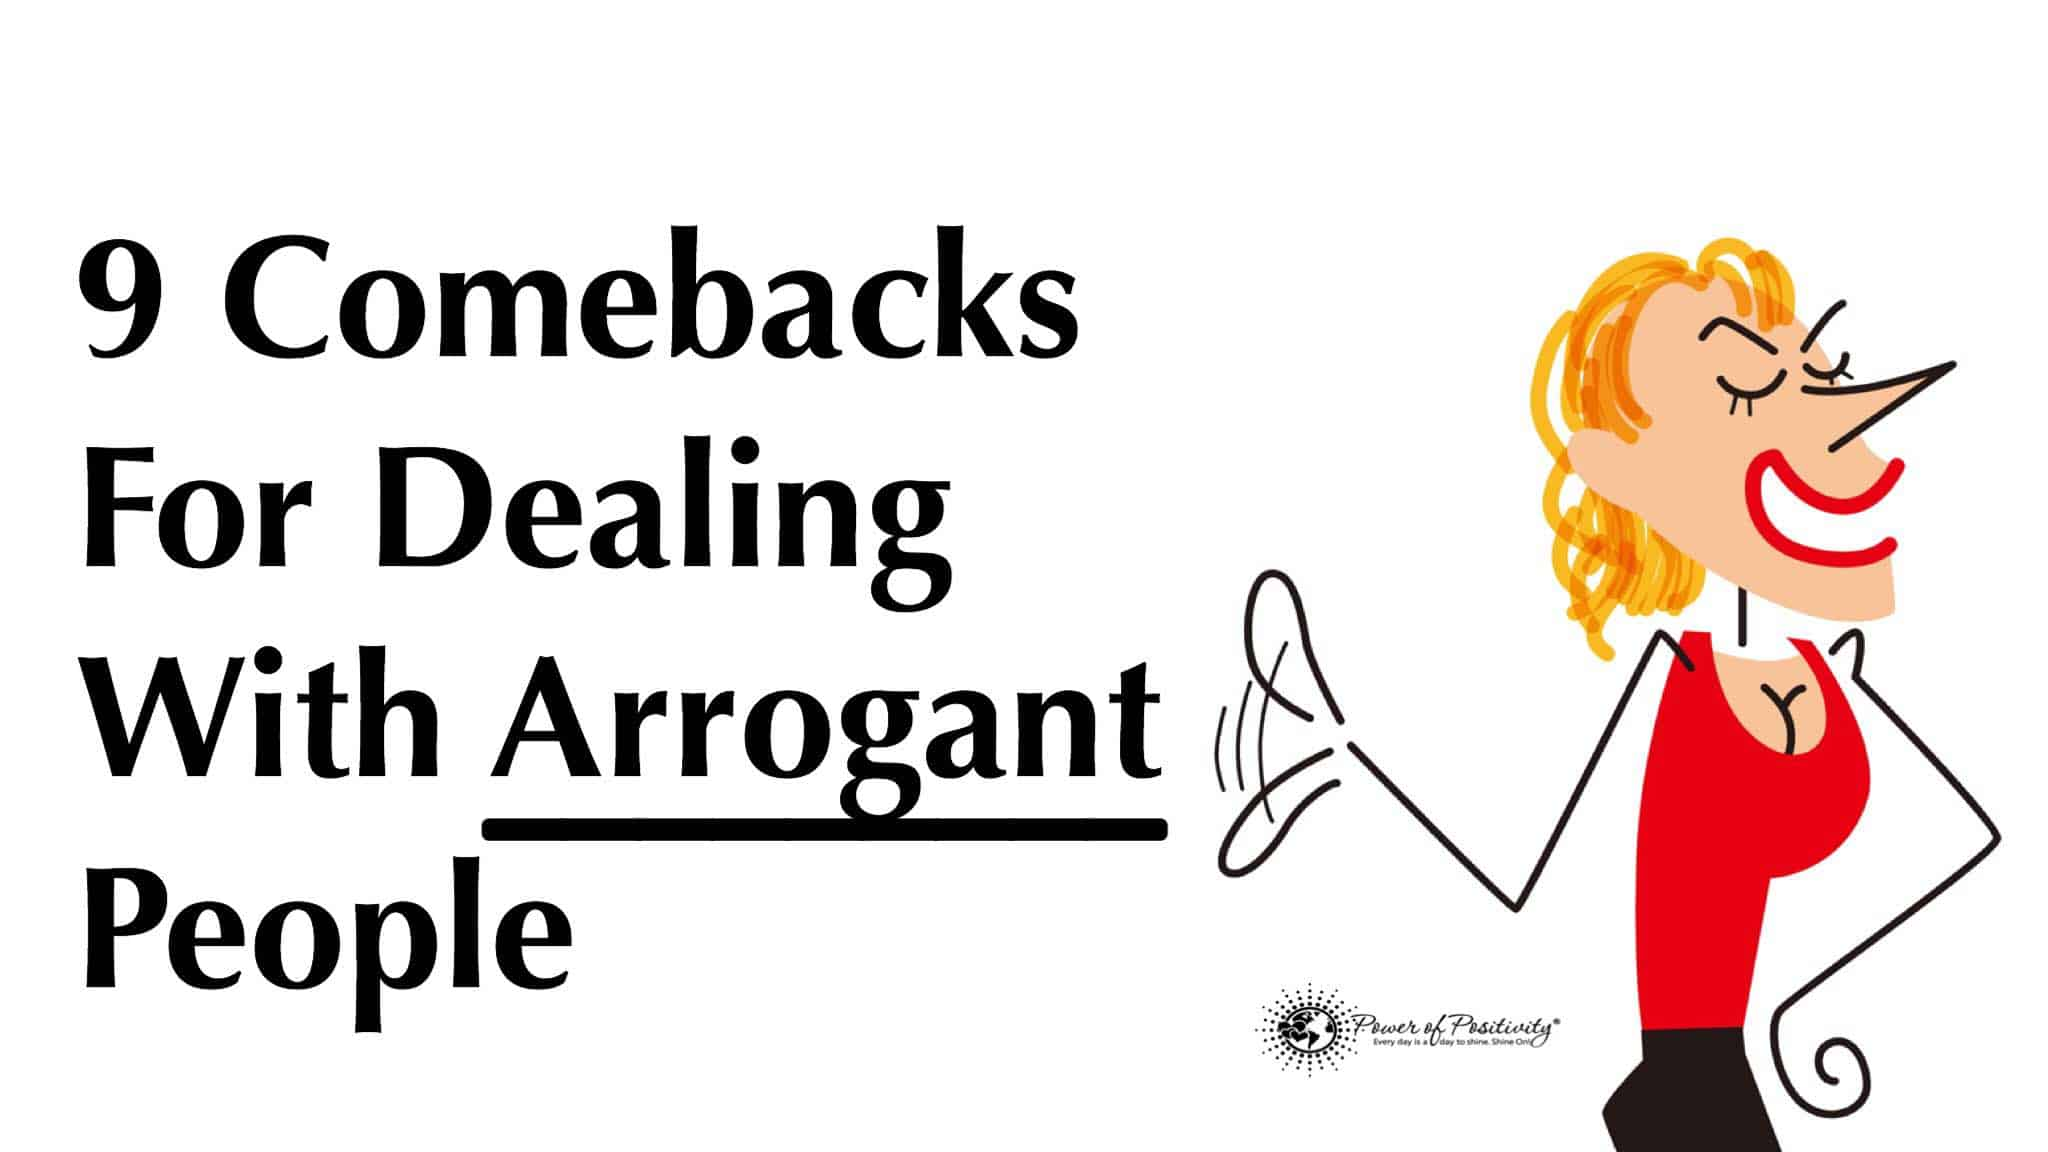 How to Deal With a Rude, Arrogant and Mean Subordinate